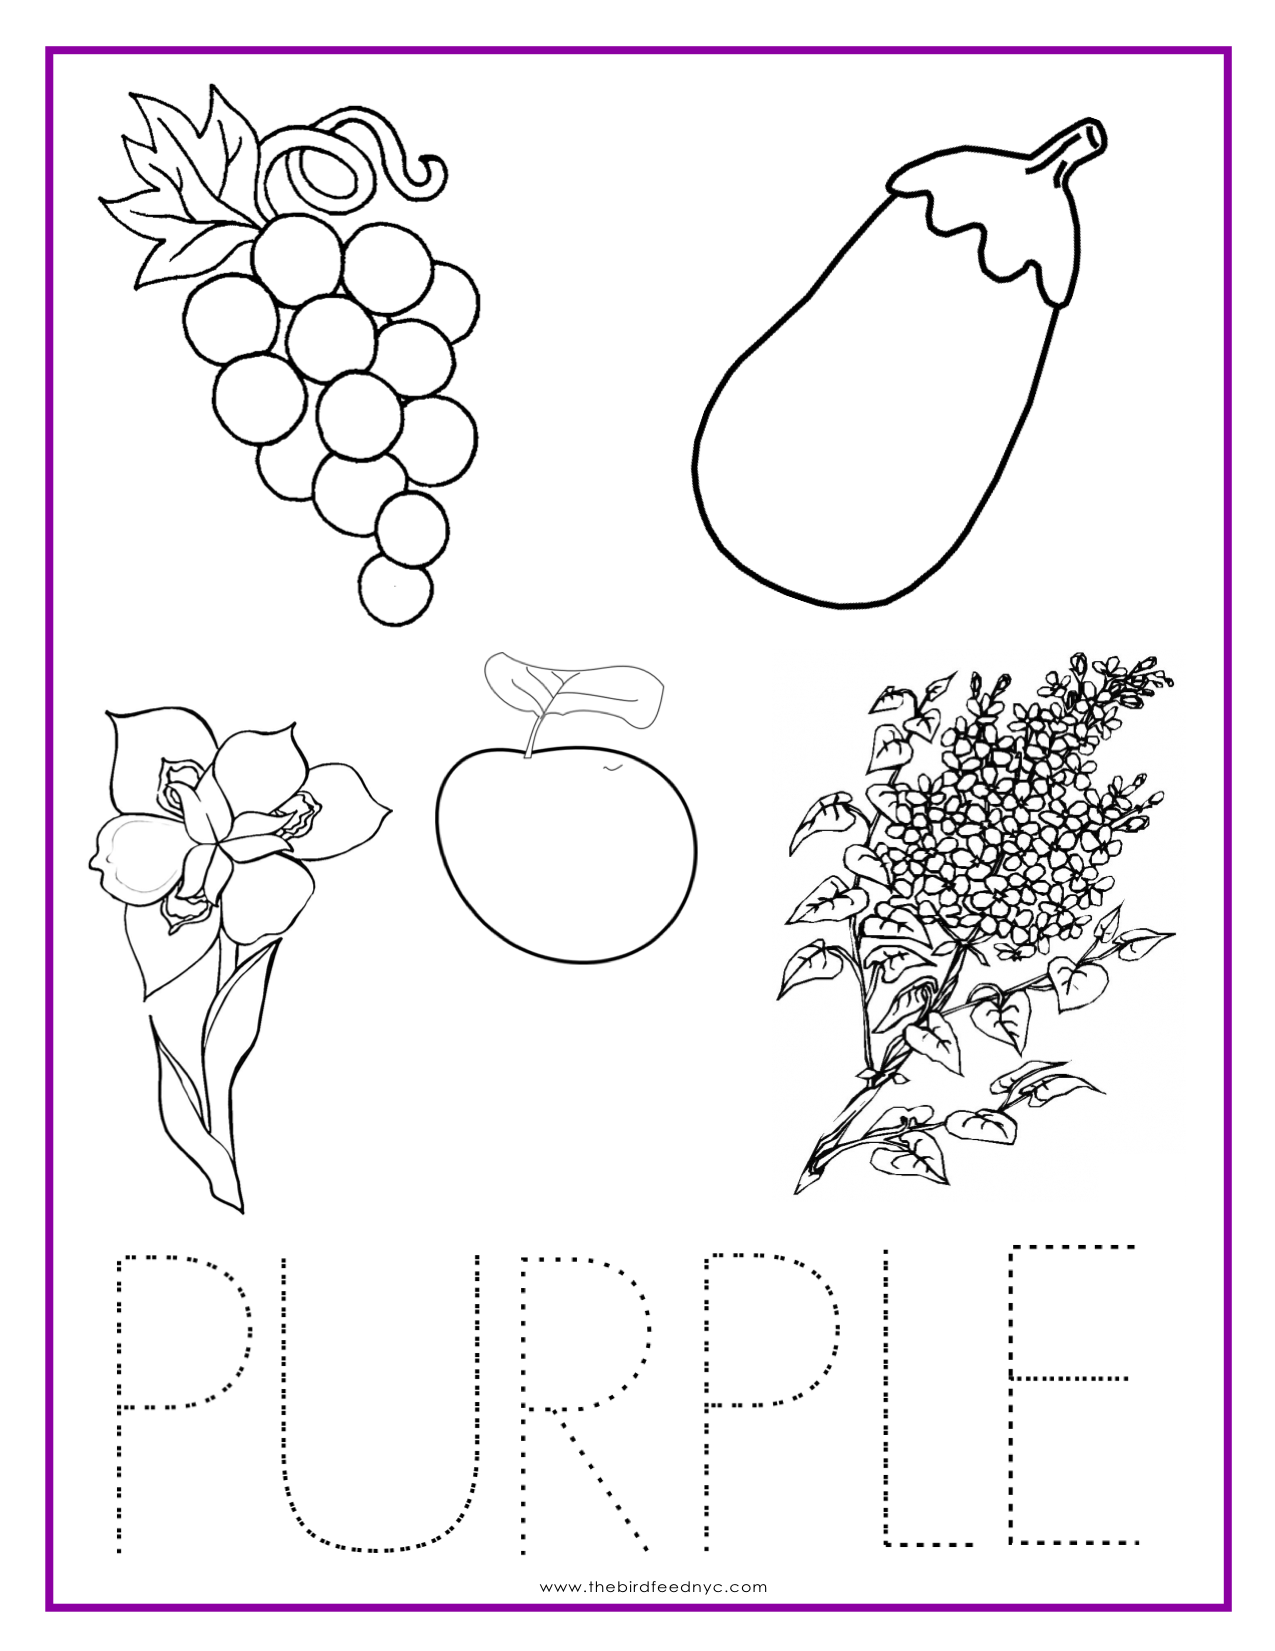 Colouring sheets to colour - This Is A Free Article Targeted For Kids To Learn About Coloring Tracing Letter Dot To Dot And Also Puzzle Kids Activity Sheets Is An Article With Some